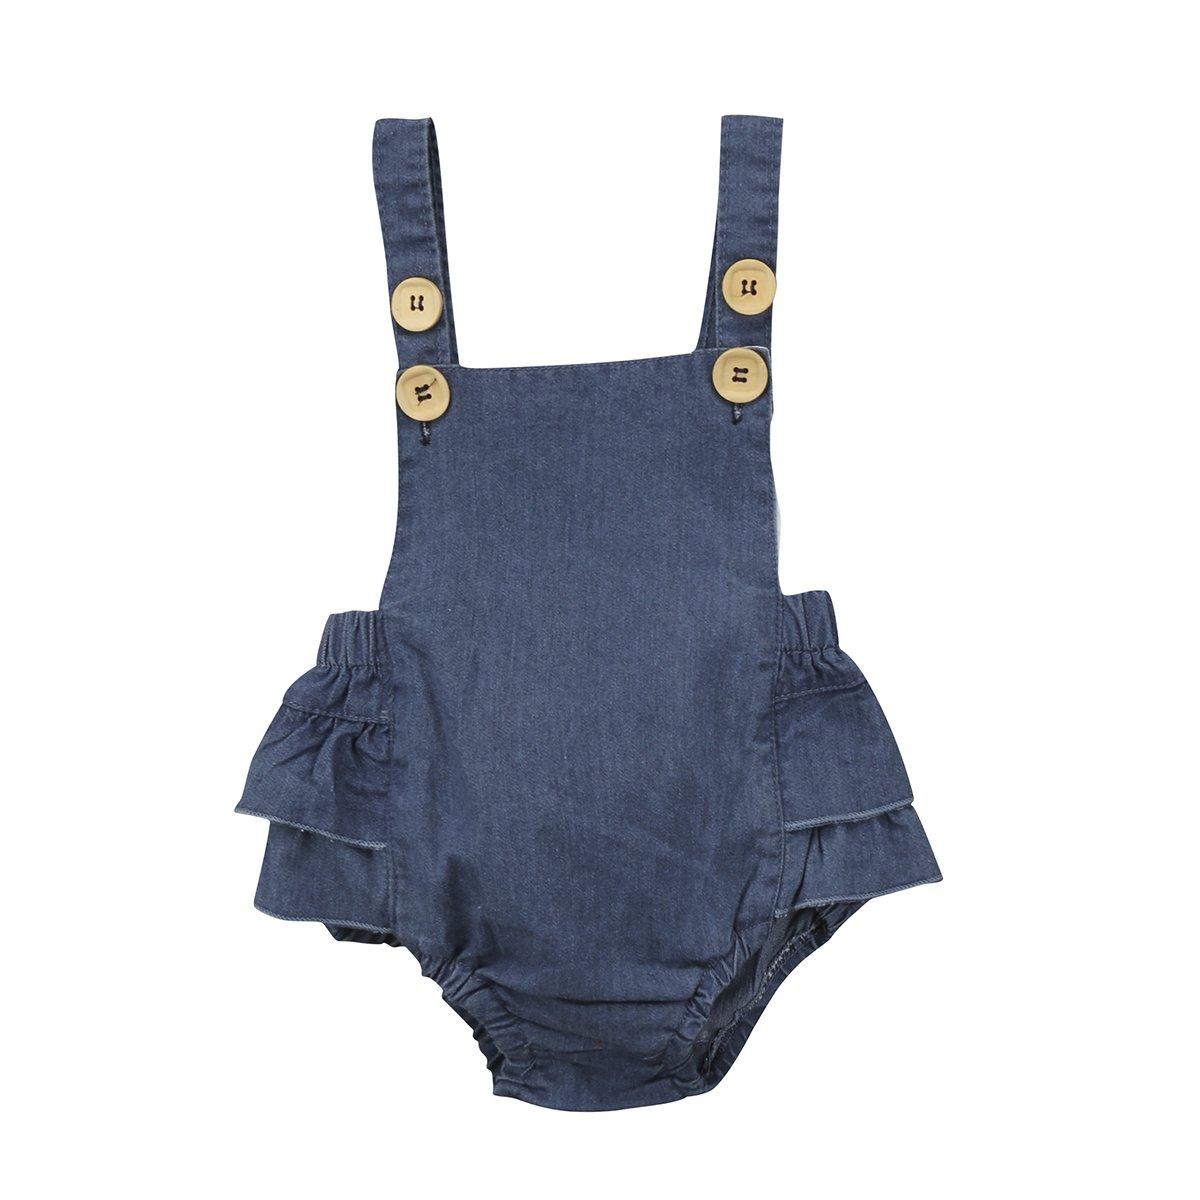 Imcute Toddler Baby Girls Ruffle Blue Jeans Romper Jumpsuit Buttons Outfit